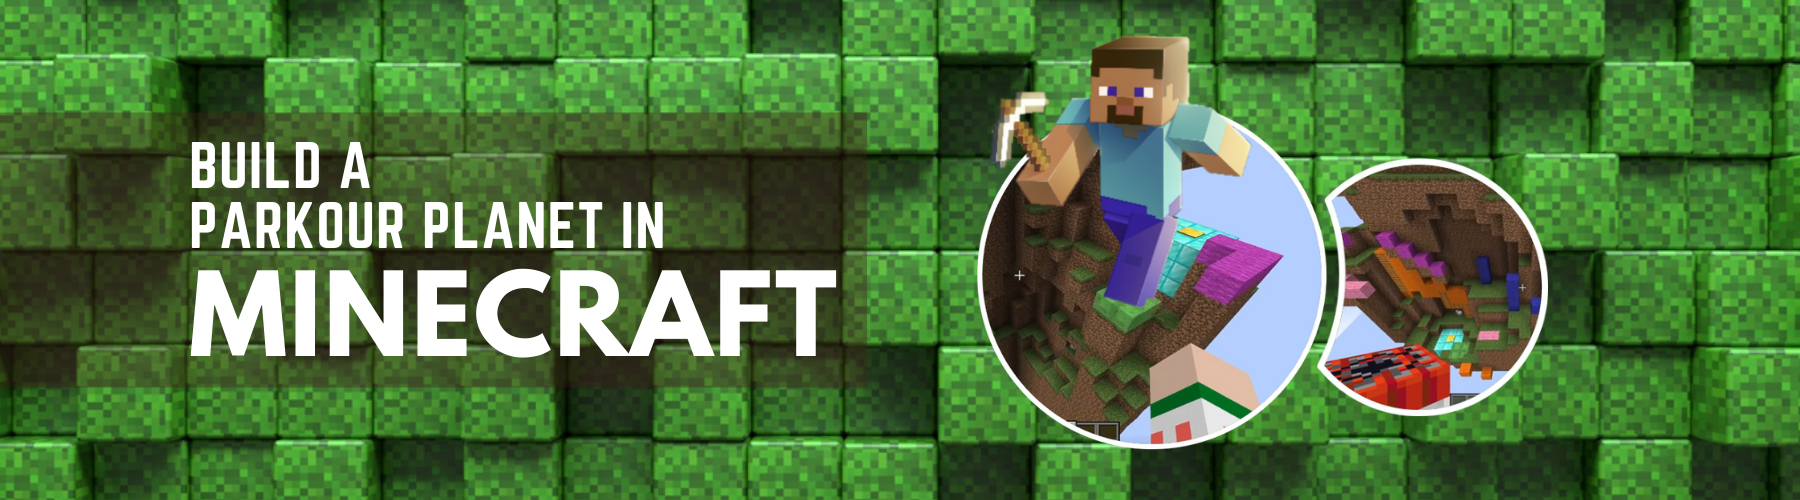 Build a Parkour Planet in Minecraft